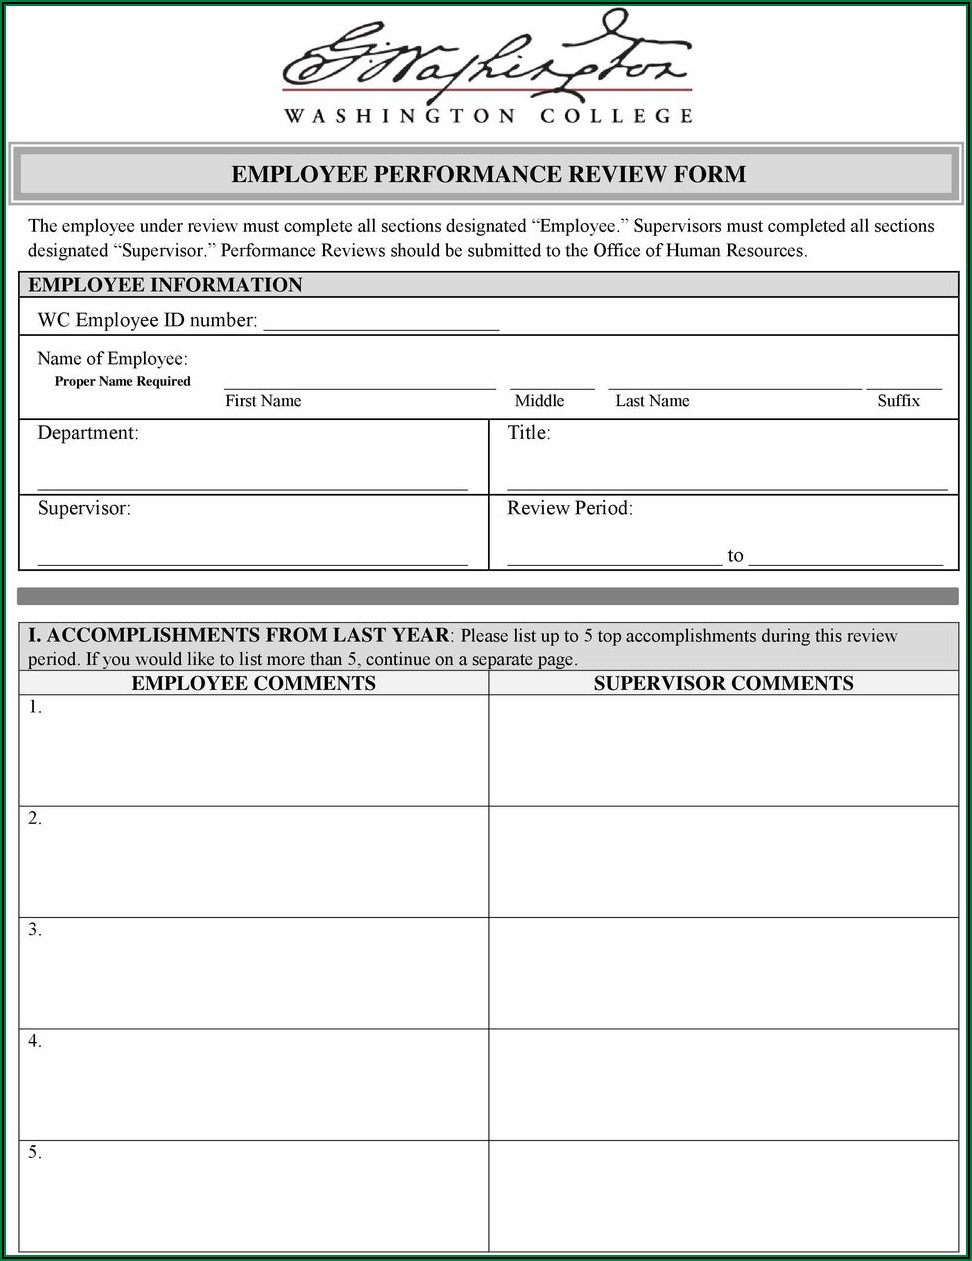 Employee Performance Review Form Pdf